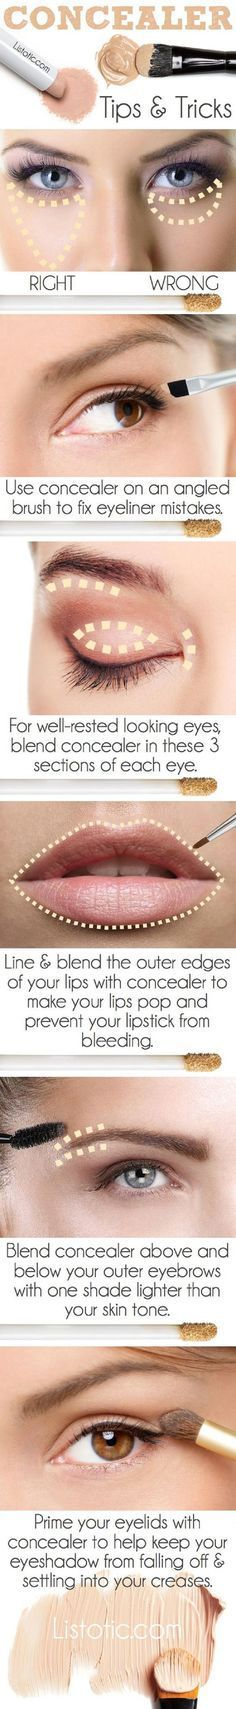 Concealer makeup tips and tricks. #beauty #makeupideas #makeup #bride